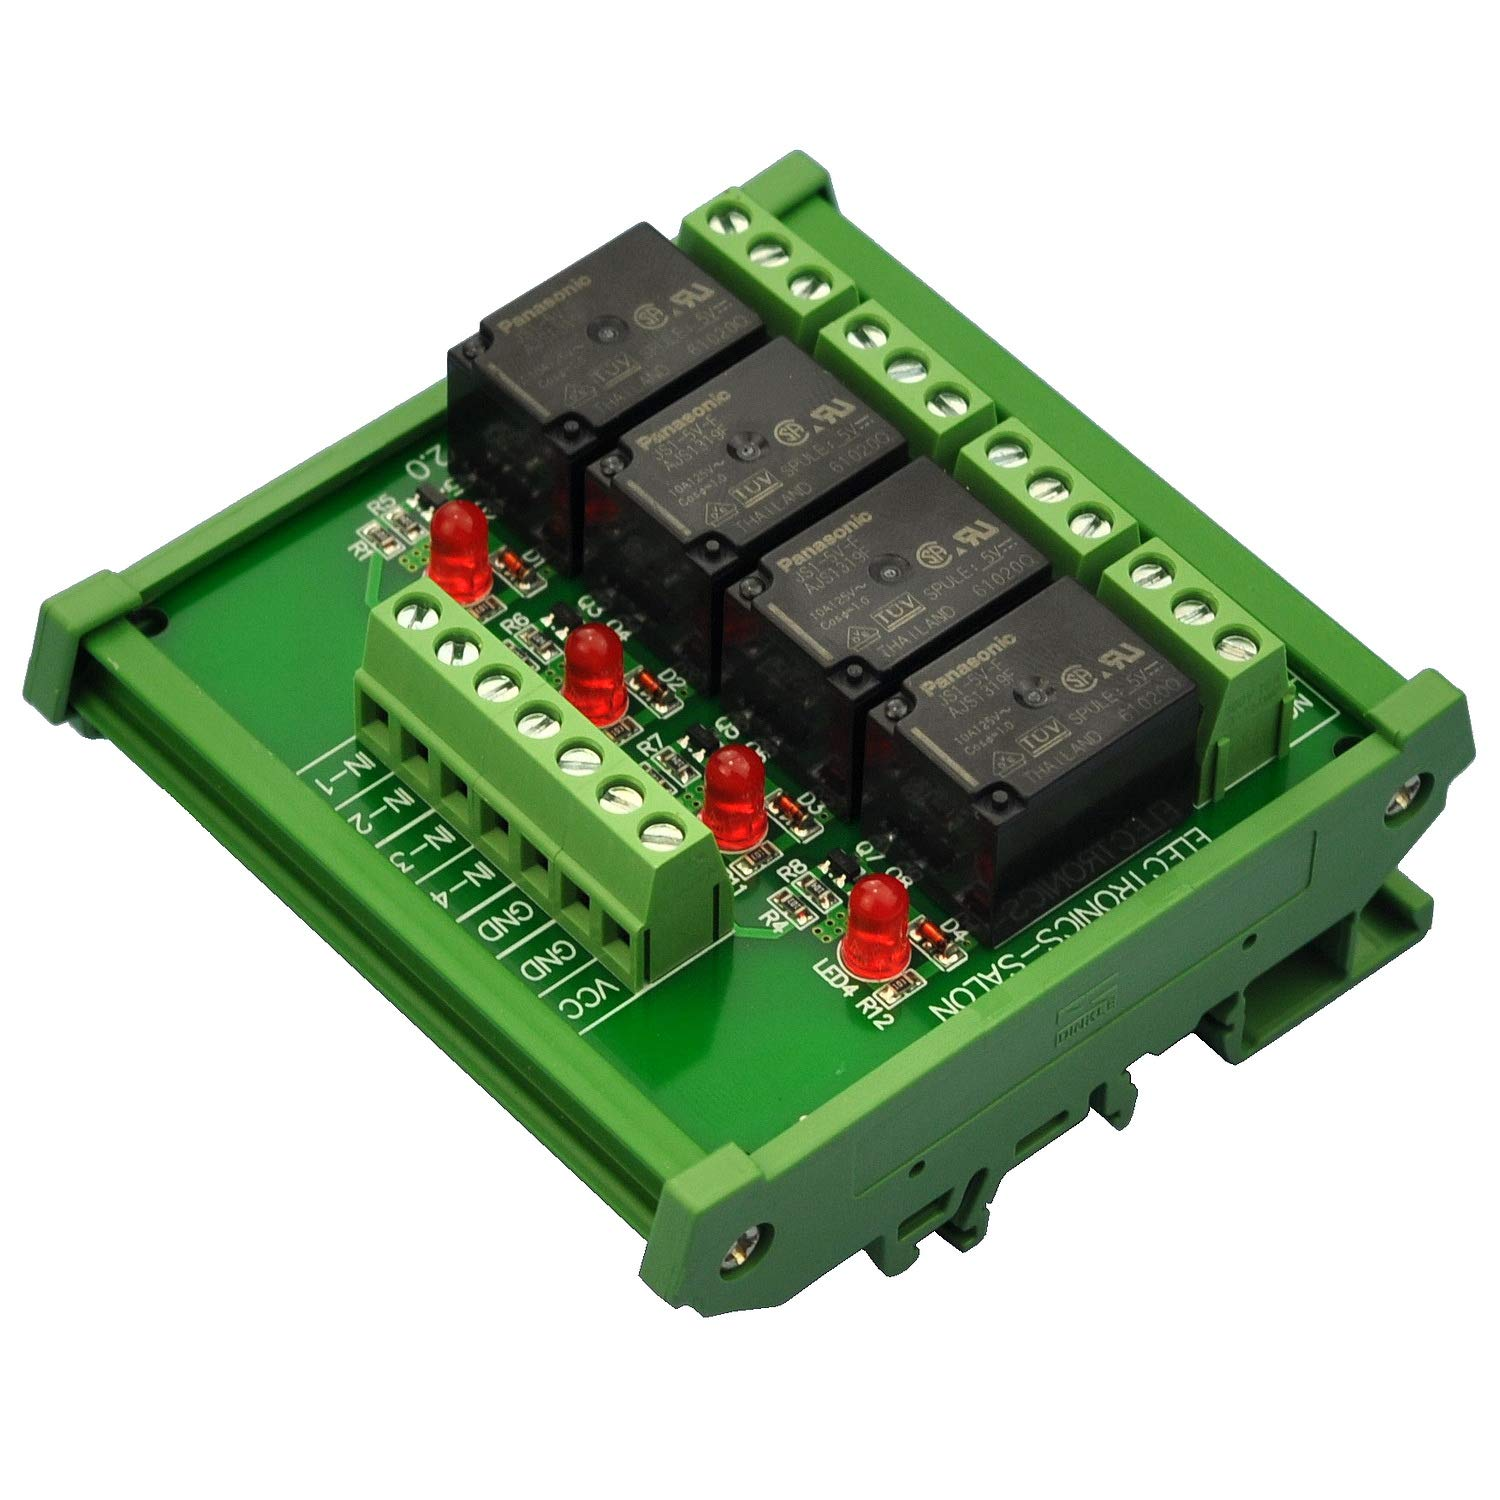 Electronics-Salon DIN Rail Mount 4 SPDT 10Amp Power Relay Interface Module, DC 5V Version.